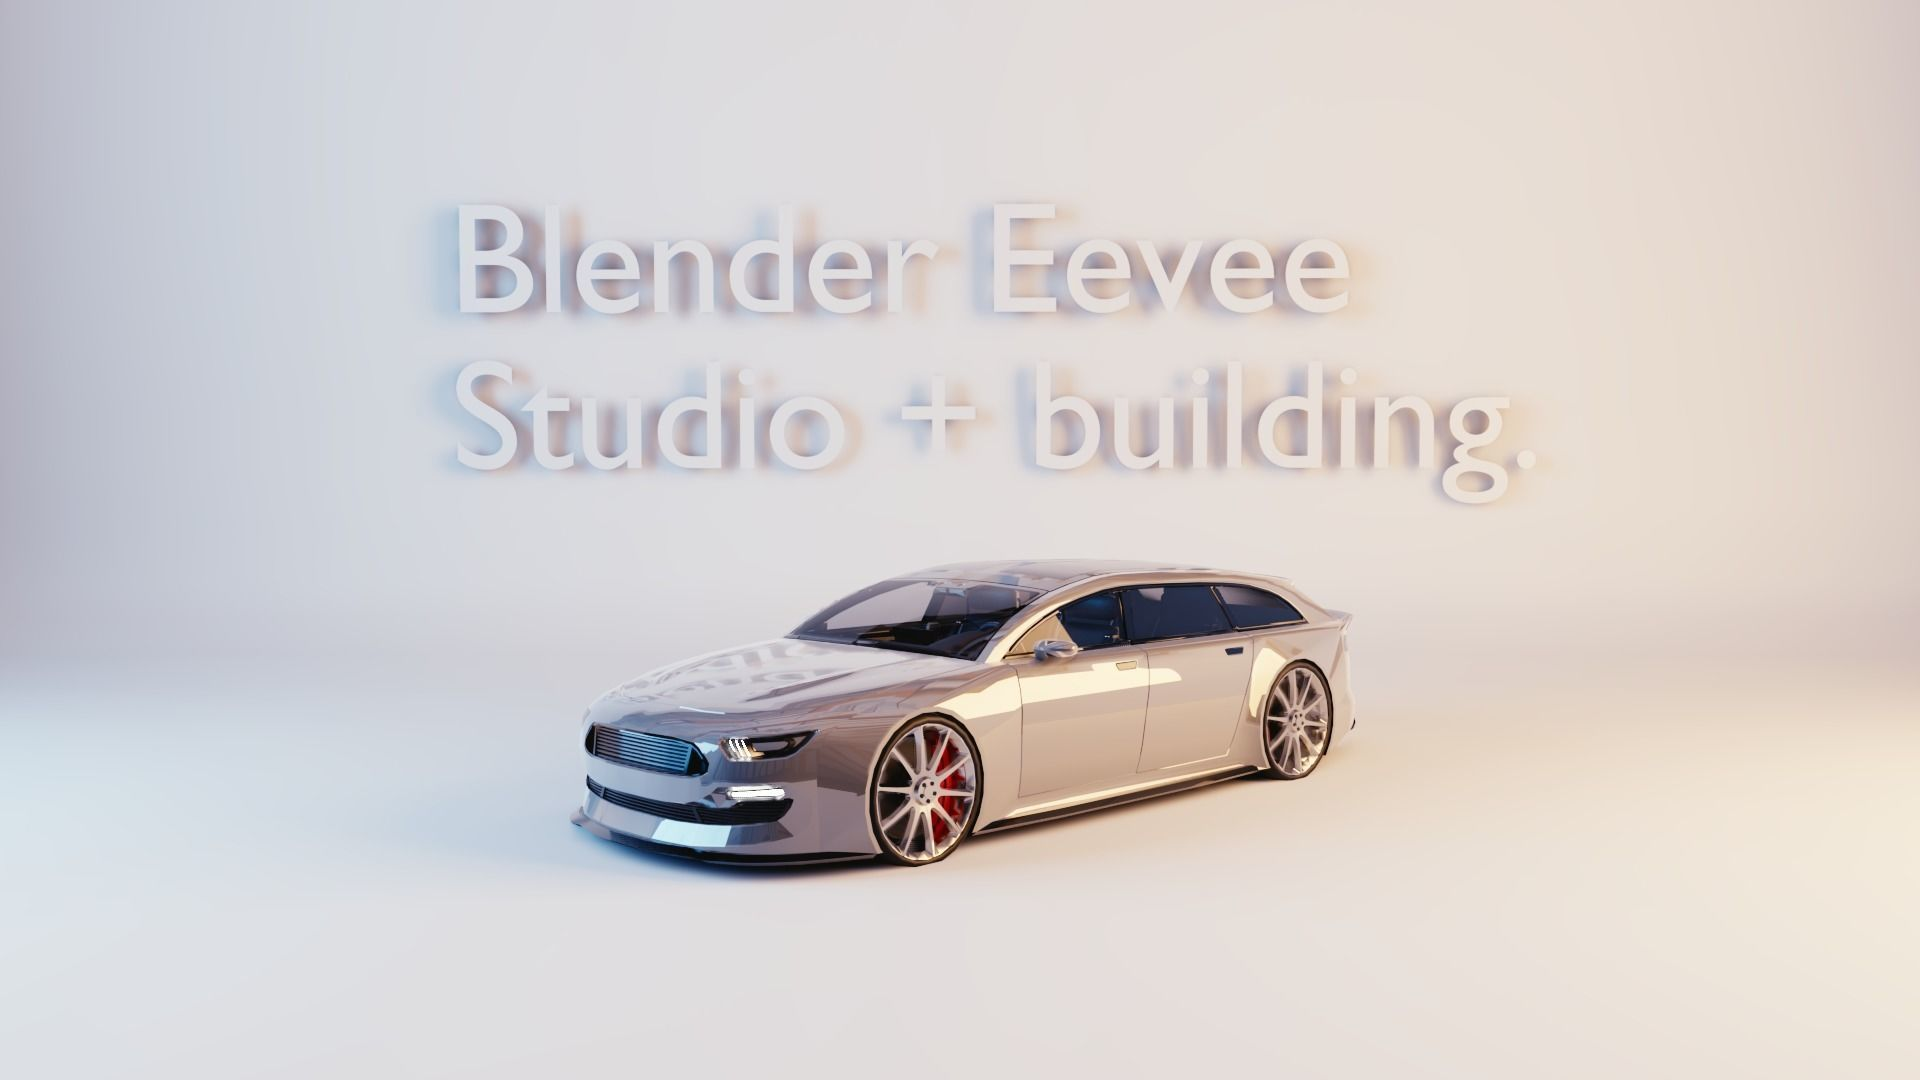 Blender Eevee studio and building | 3D model